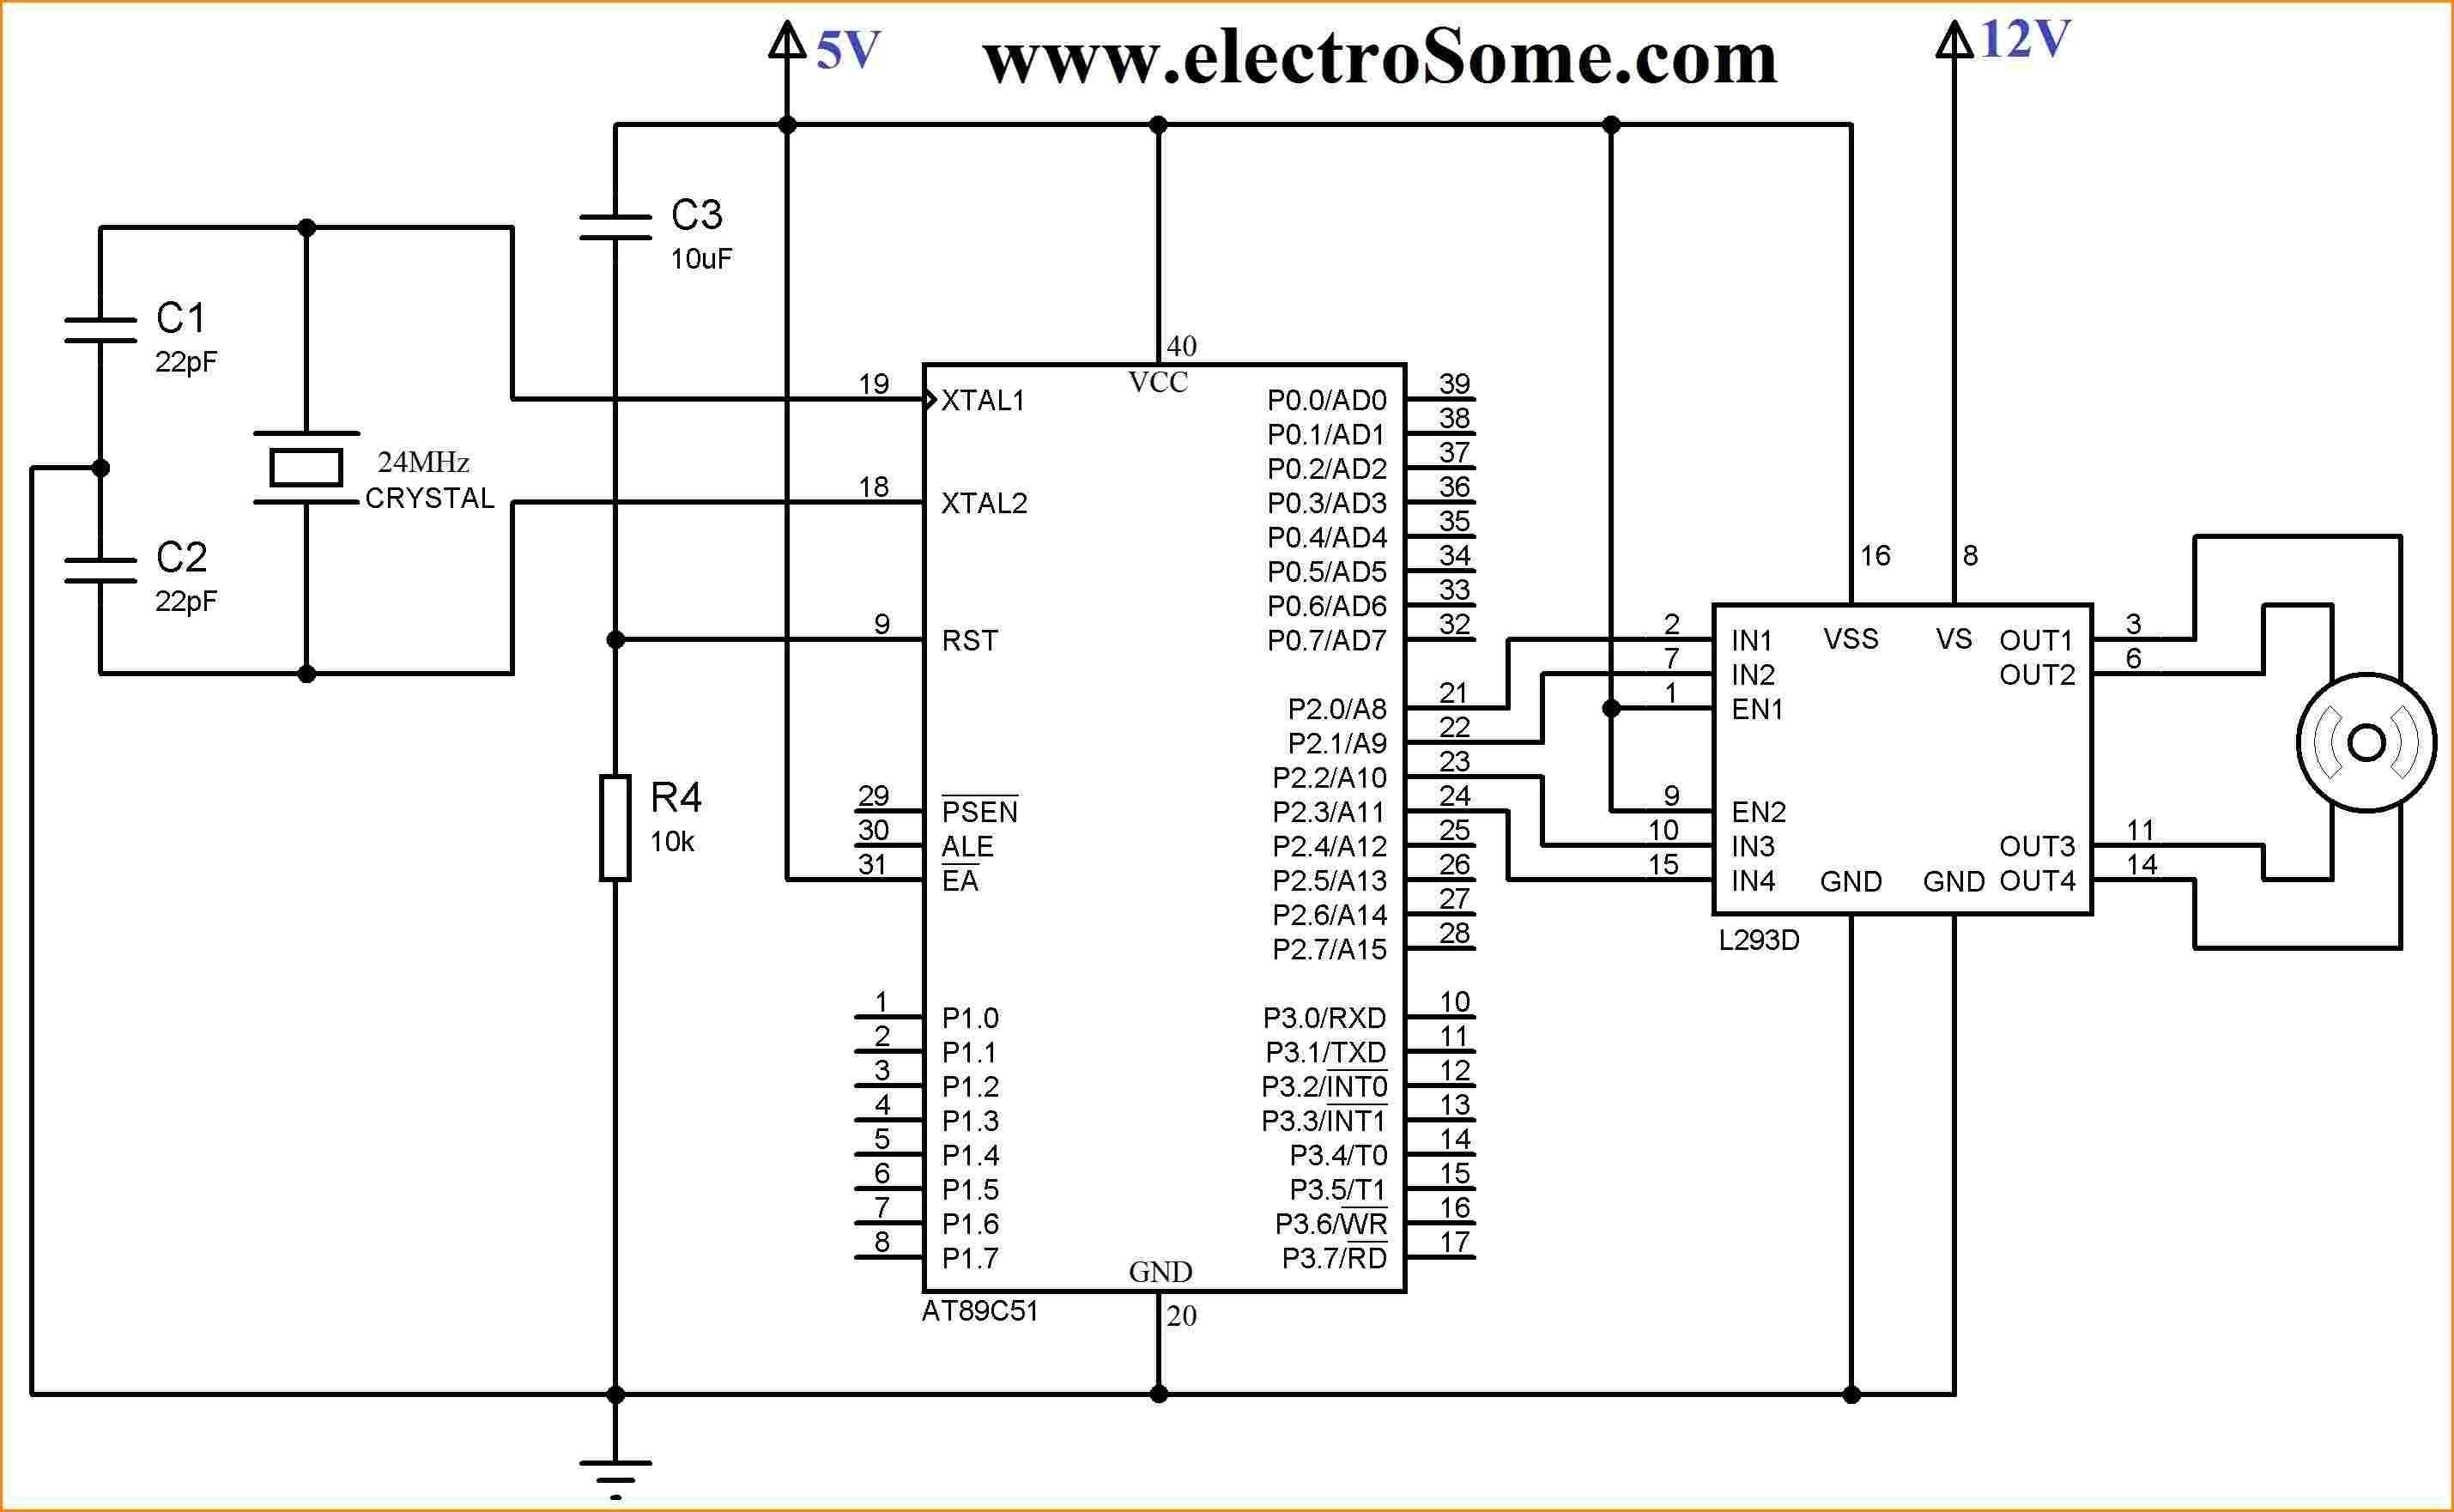 Magnificent Camera Wiring Diagram On Koolertron Backup Camera Wiring Diagram Wiring Cloud Domeilariaidewilluminateatxorg